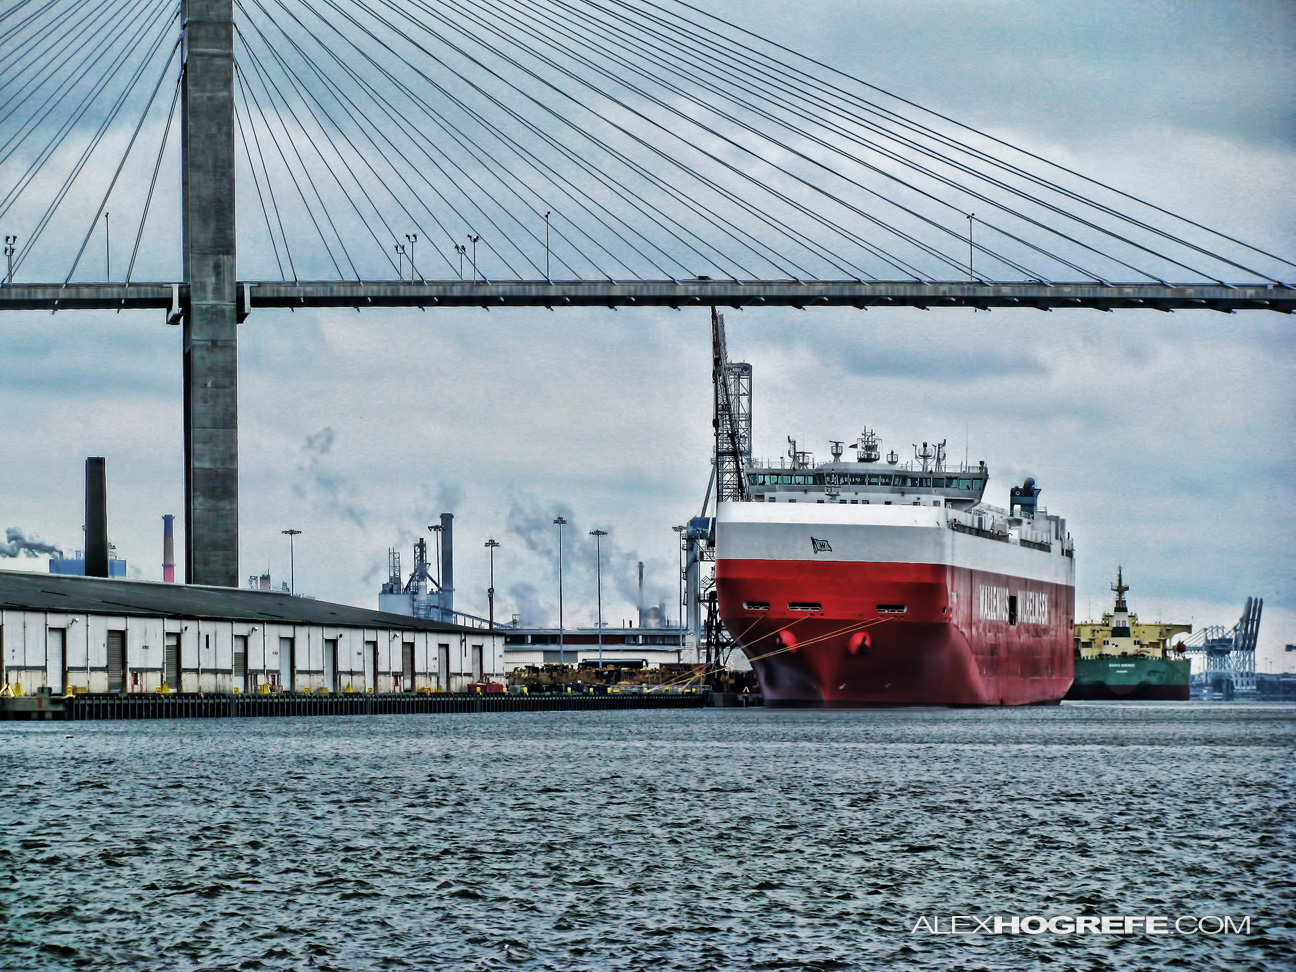 Ship_Savannah_alex_hogrefe